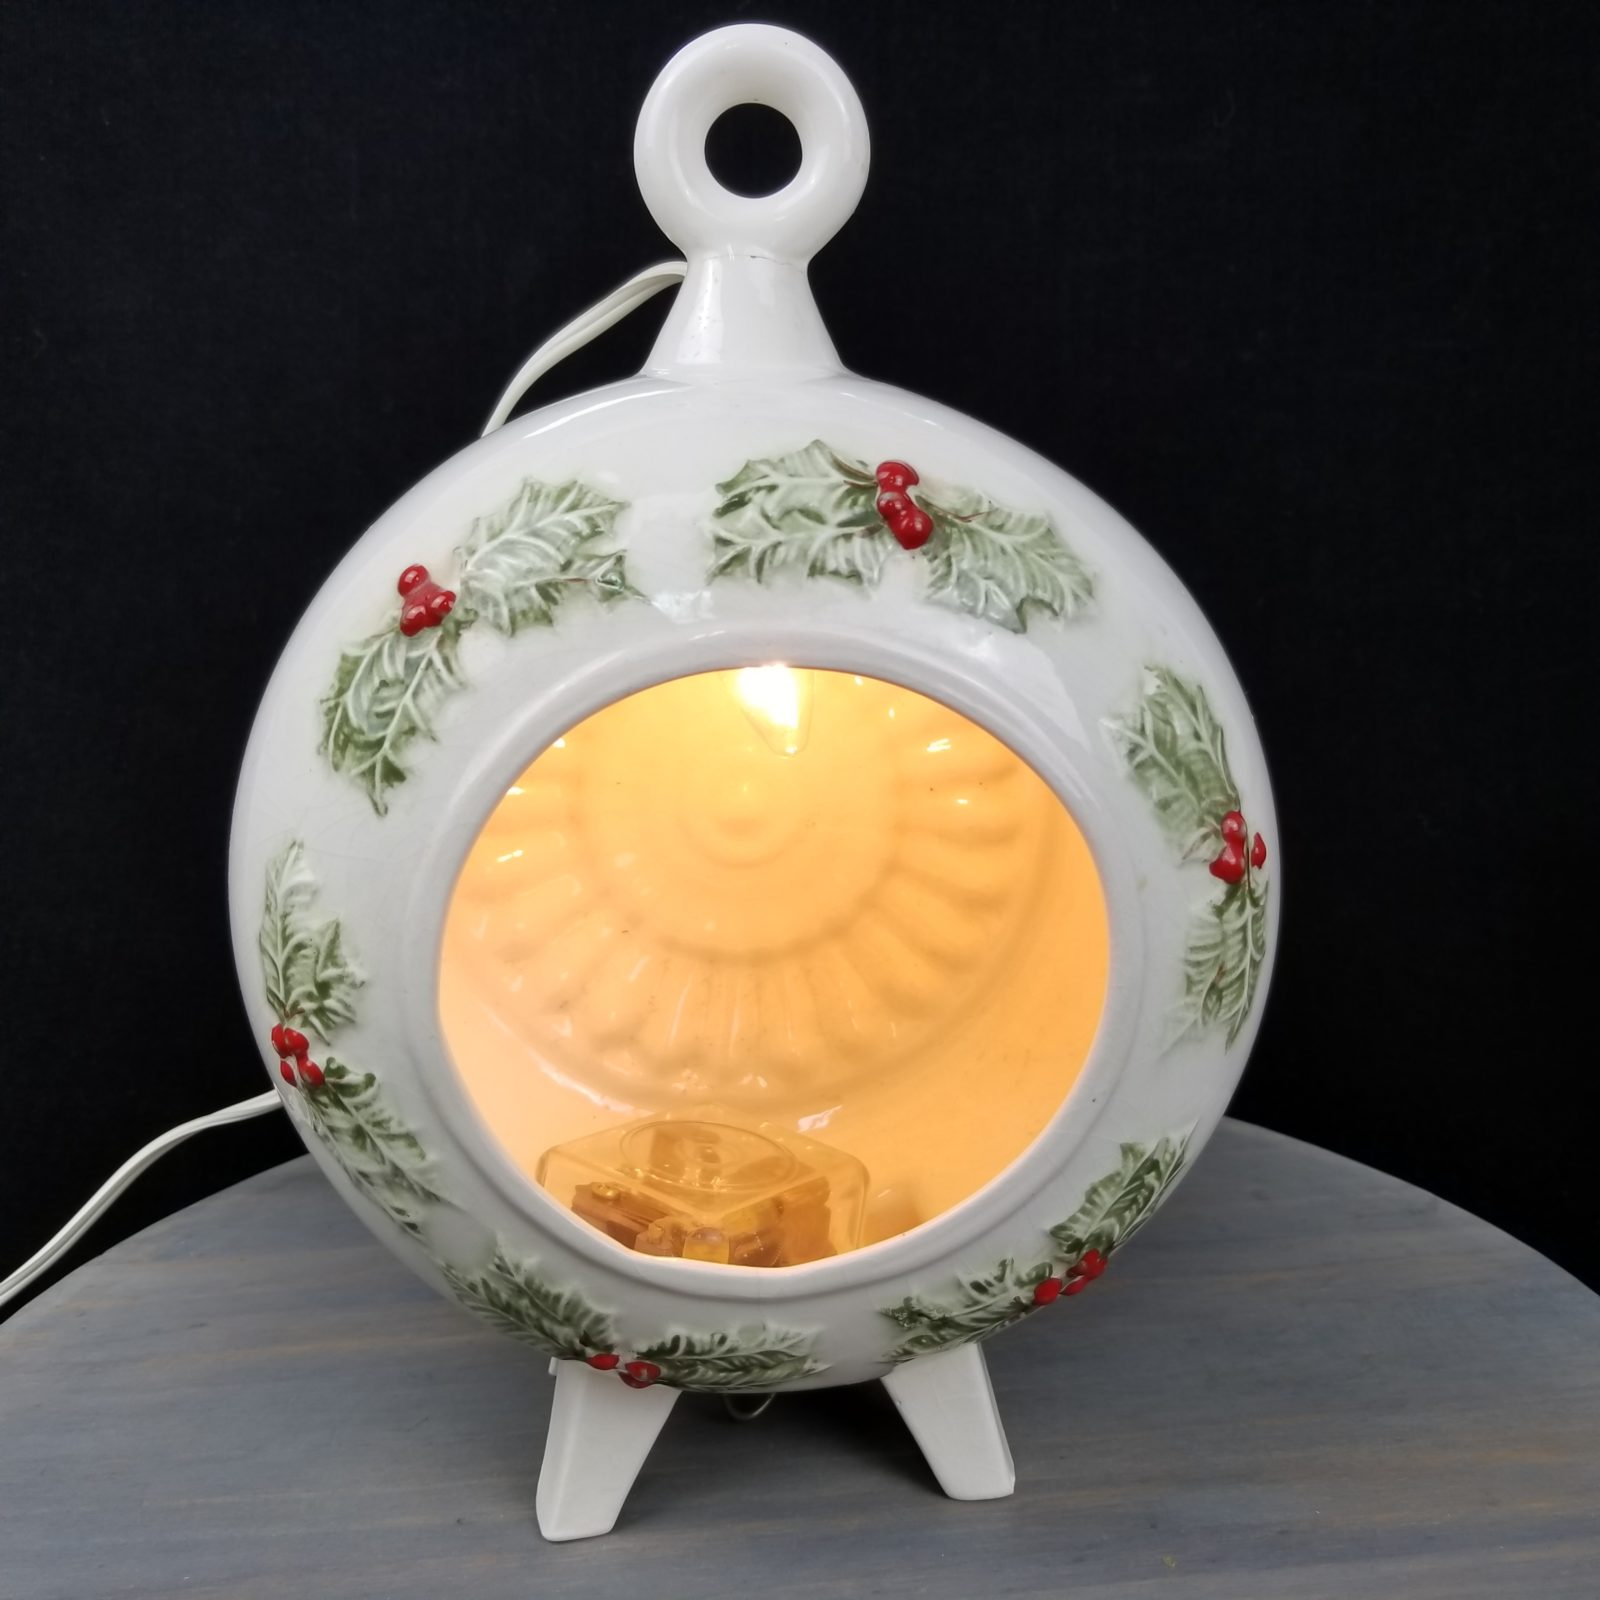 1970s Uniquely Handmade Christmas Lamp - Retell Seller